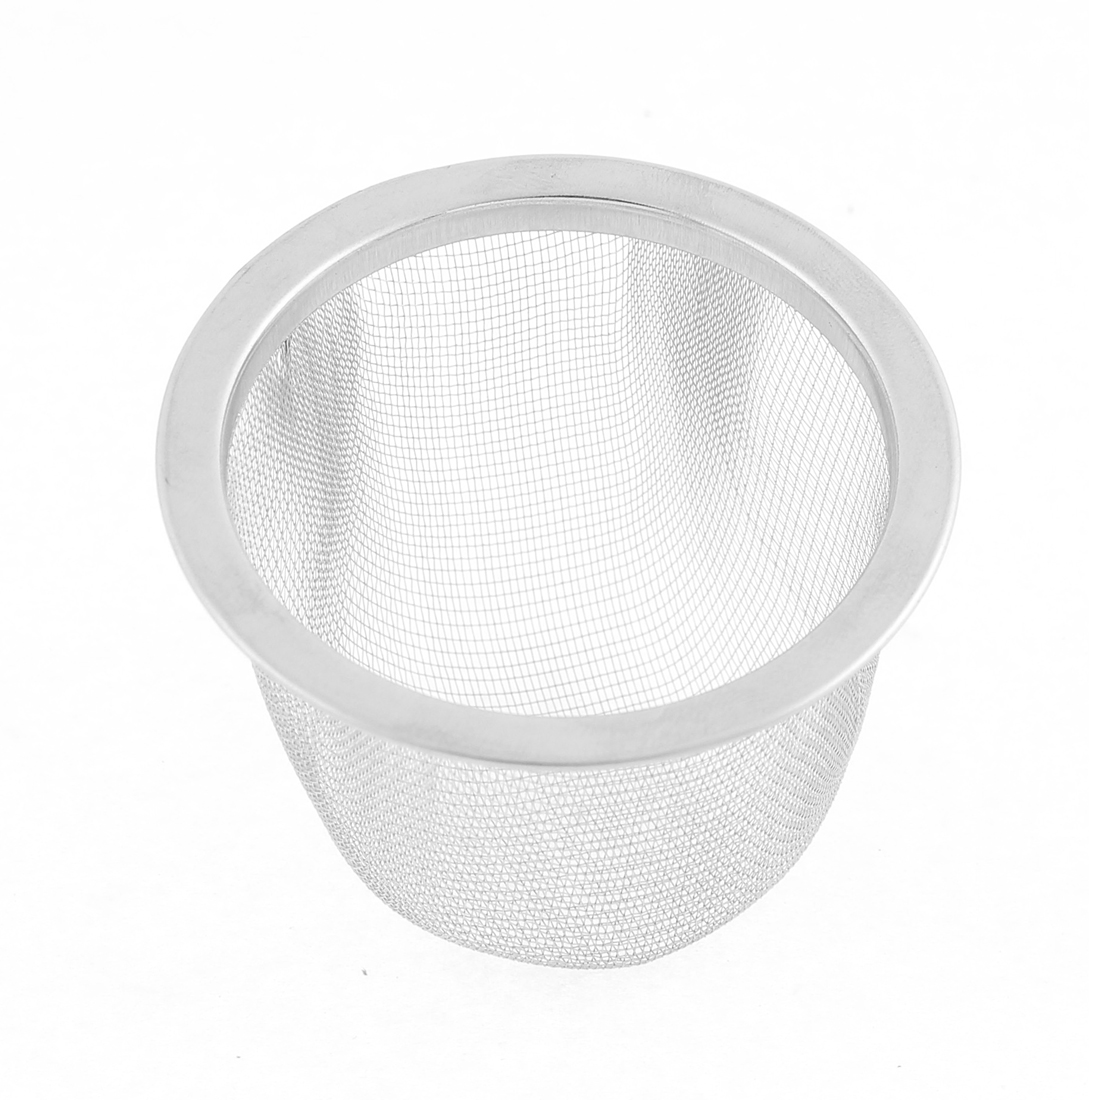 60mm Outer Dia Stainless Steel Mesh Tea Leaves Spice Strainer Basin Basket